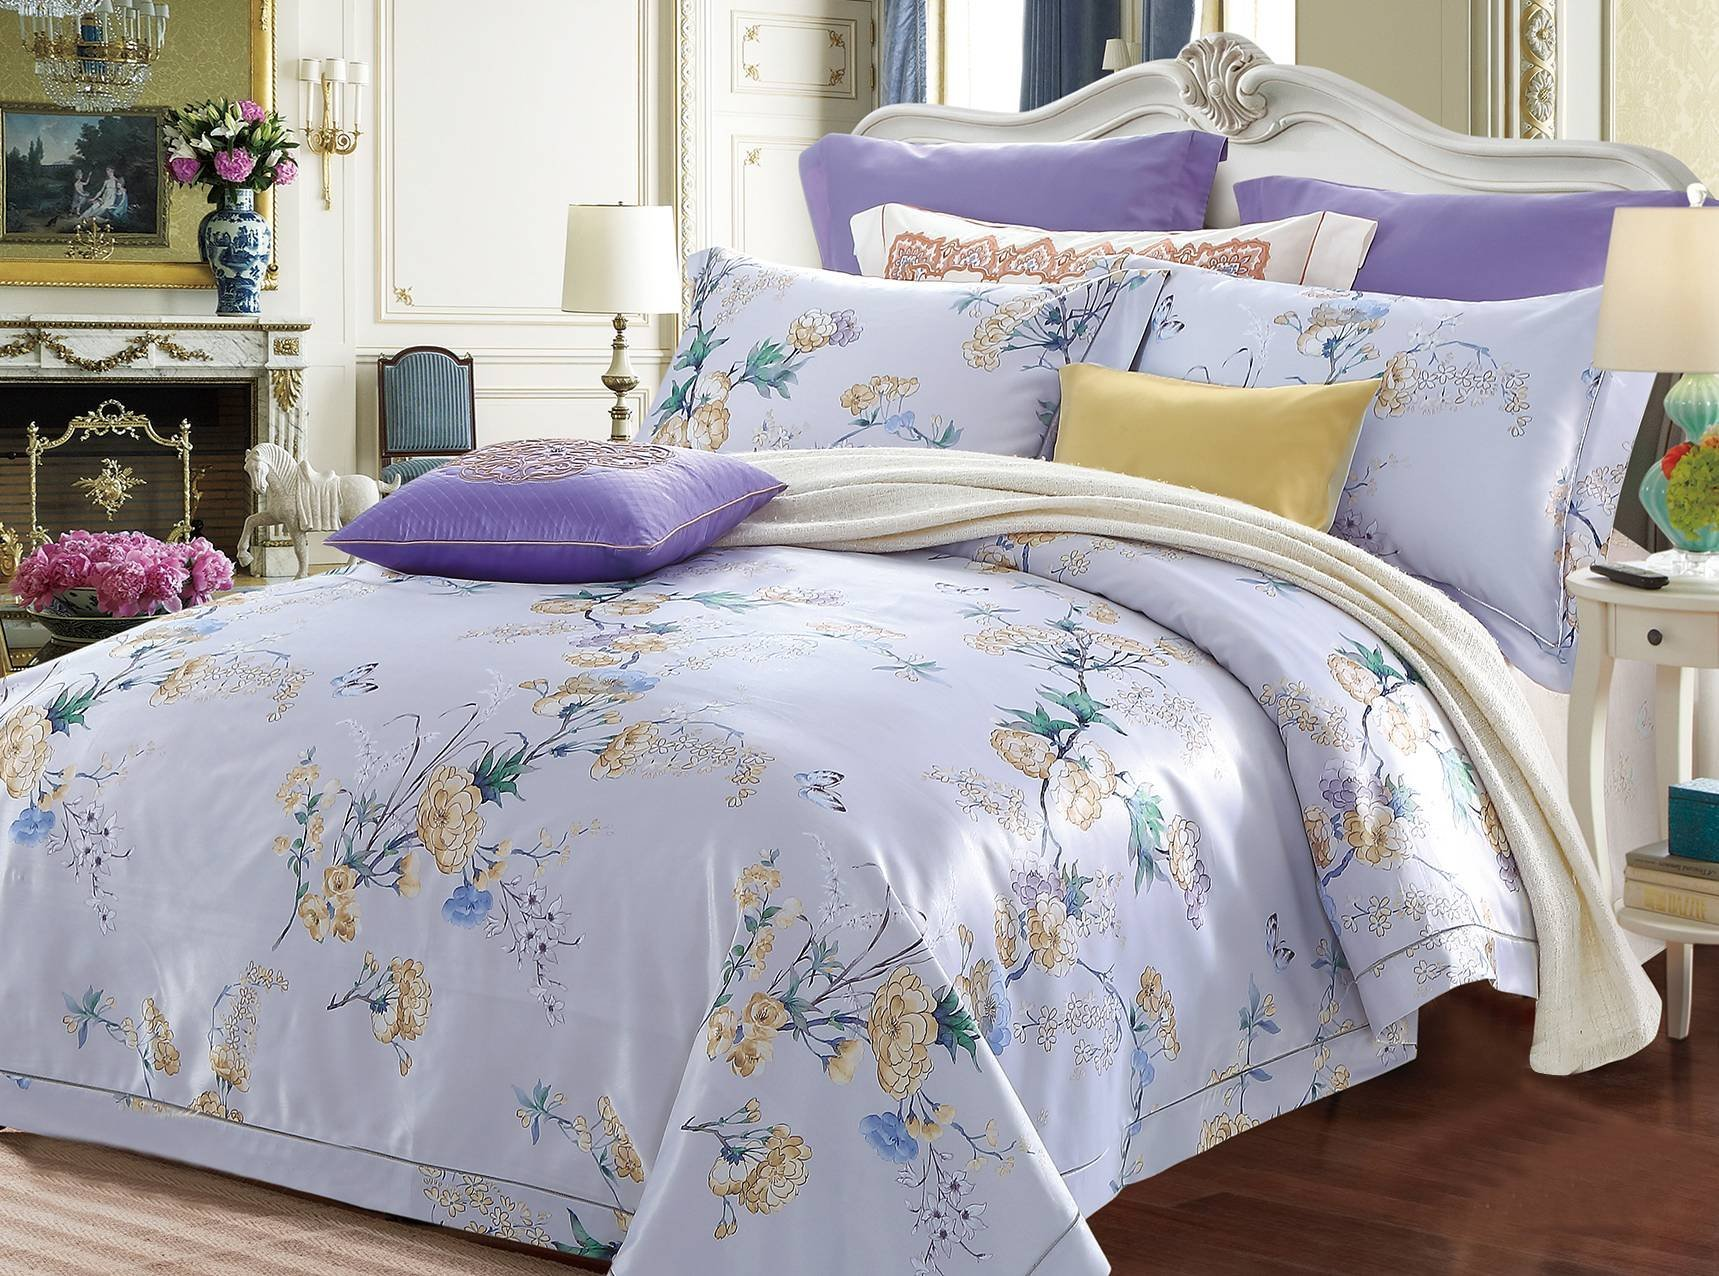 Floral Pattern Polyester Rayon Jacquard Bedding   6848